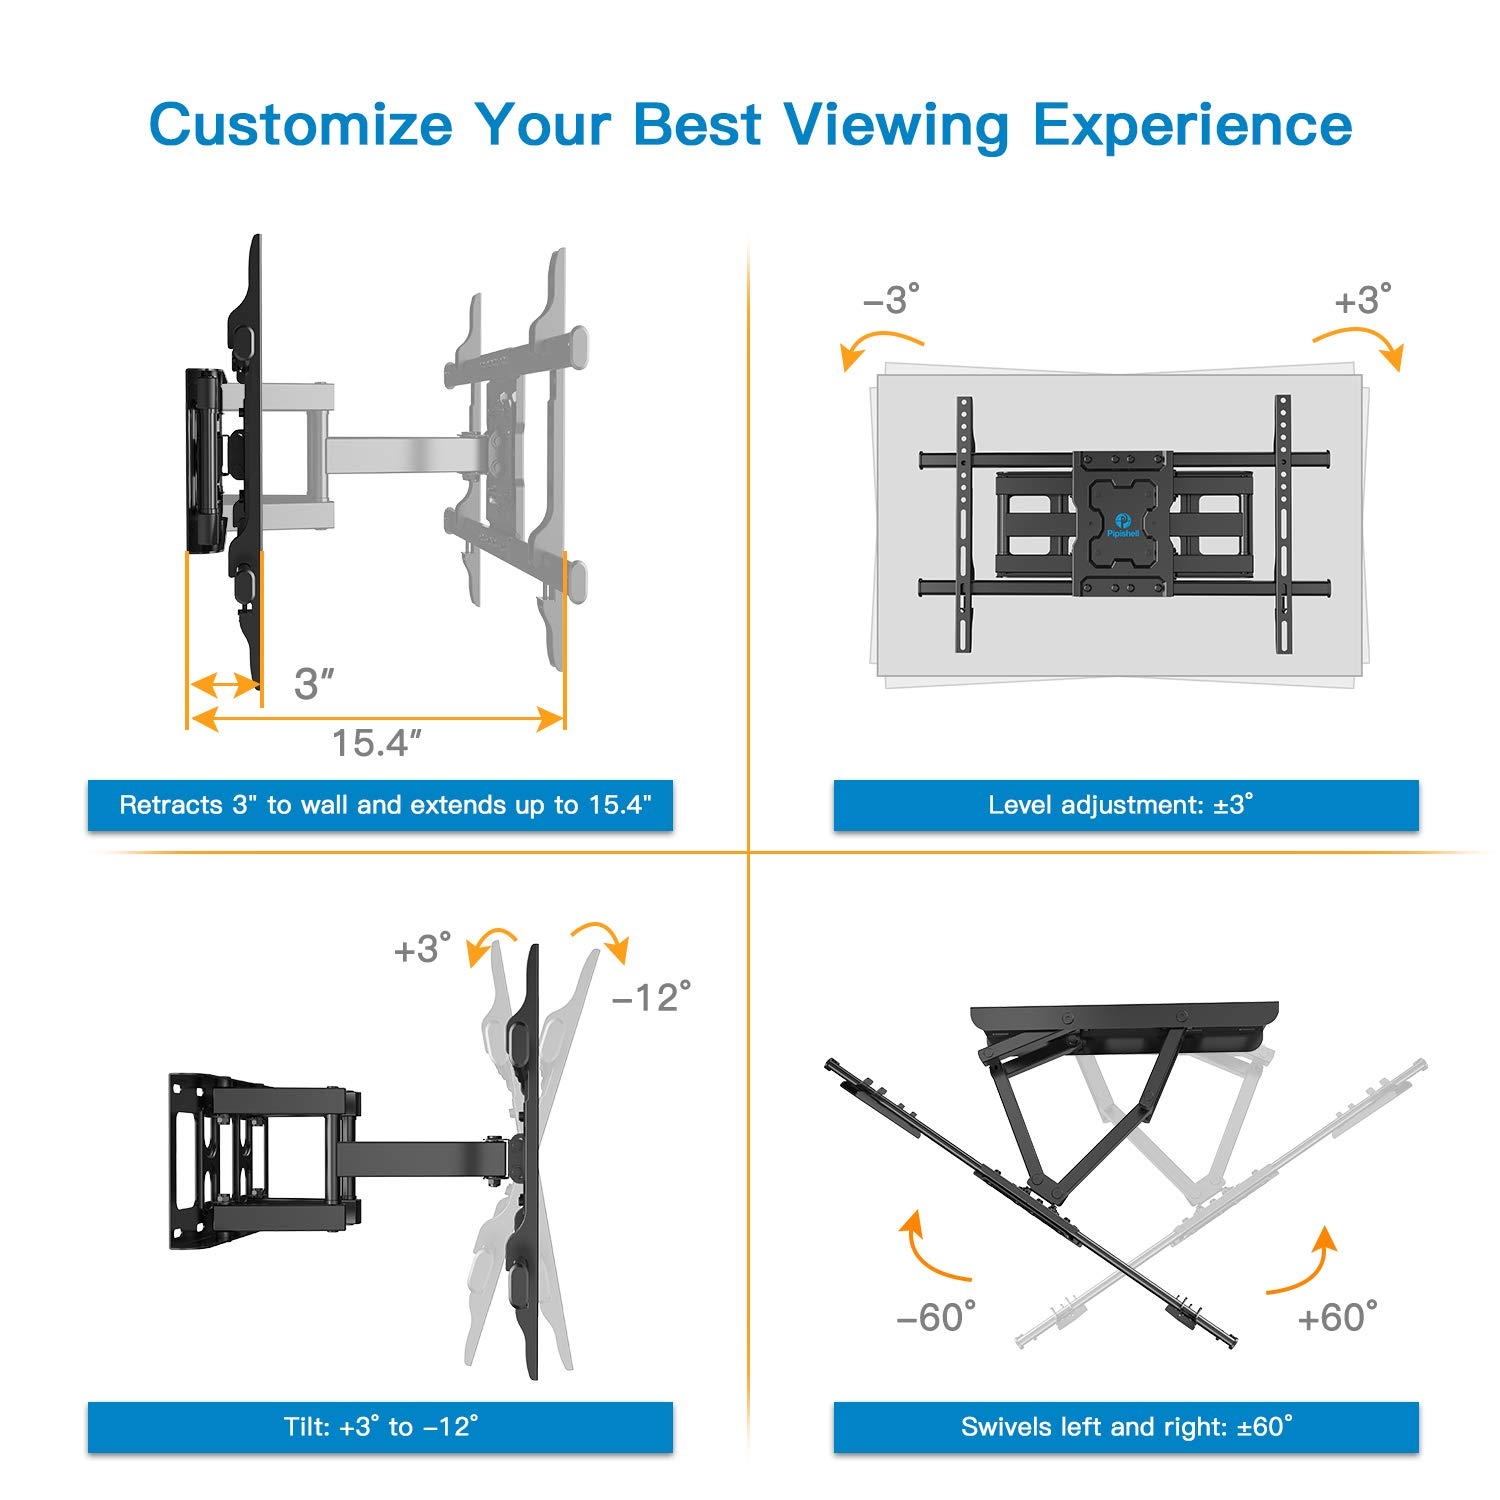 Full Motion TV Wall Mount Bracket Dual Articulating Arms Swivels Tilts Rotation for Most 37-70 Inch LED, LCD, OLED Flat&Curved TVs, Holds up to 132lbs, Max VESA 600x400mm by Pipishell by Pipishell (Image #2)